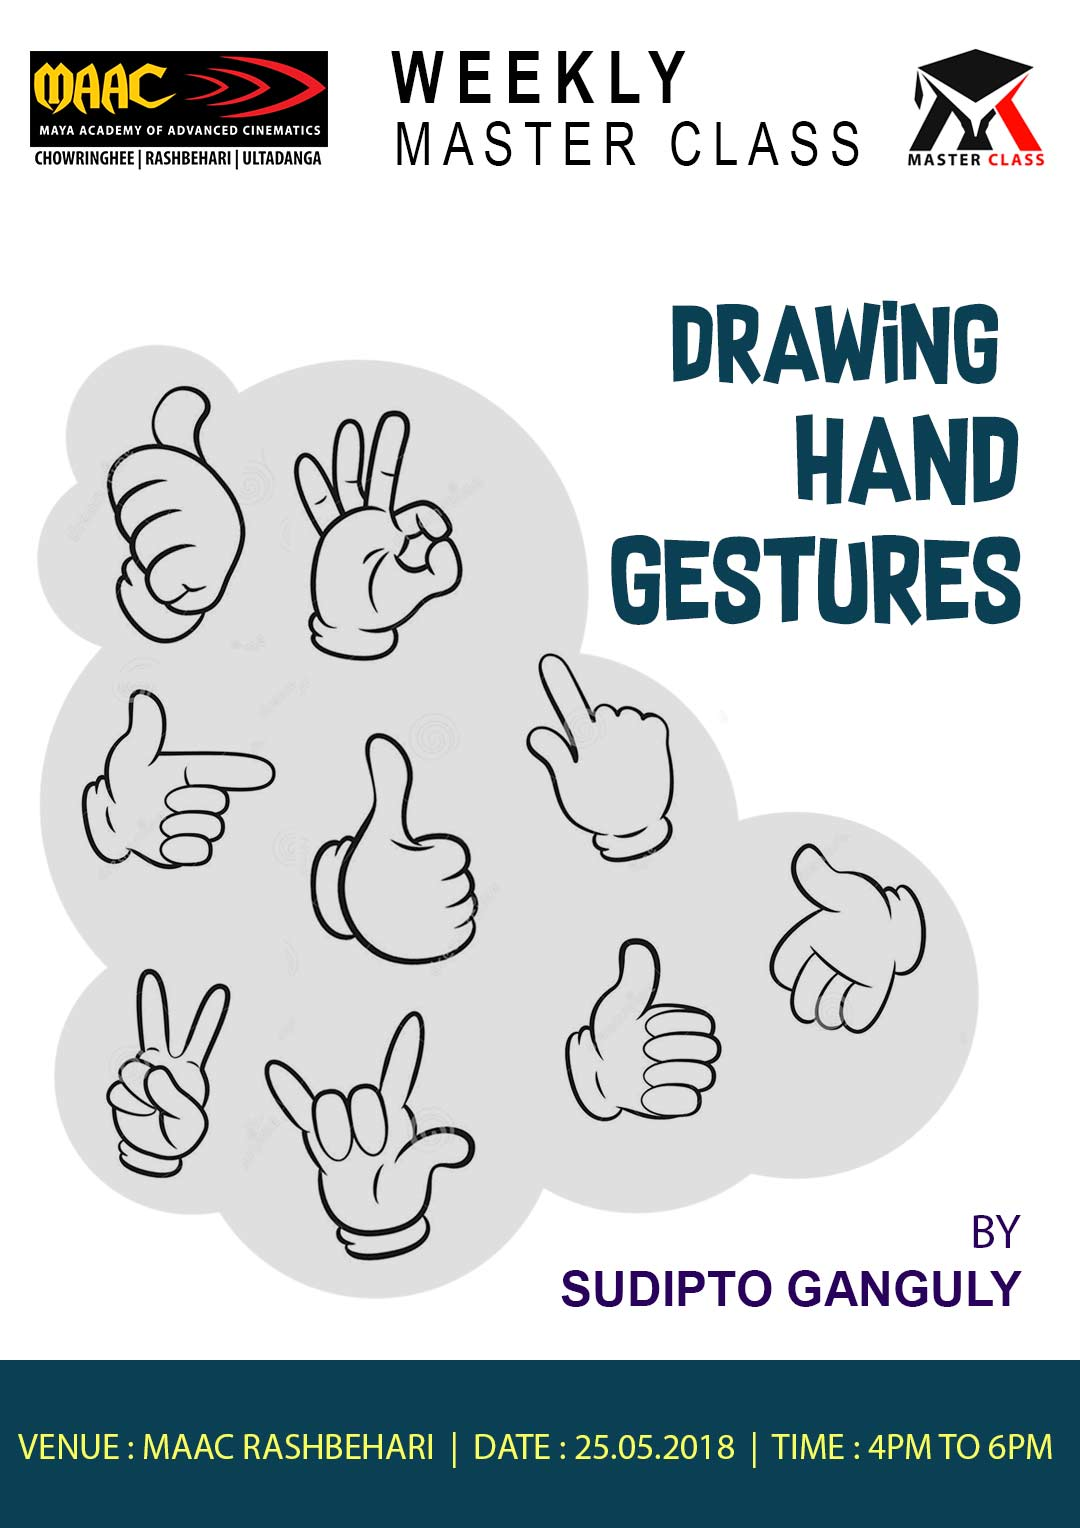 Weekly Master Class on Drawing Hand Gestures